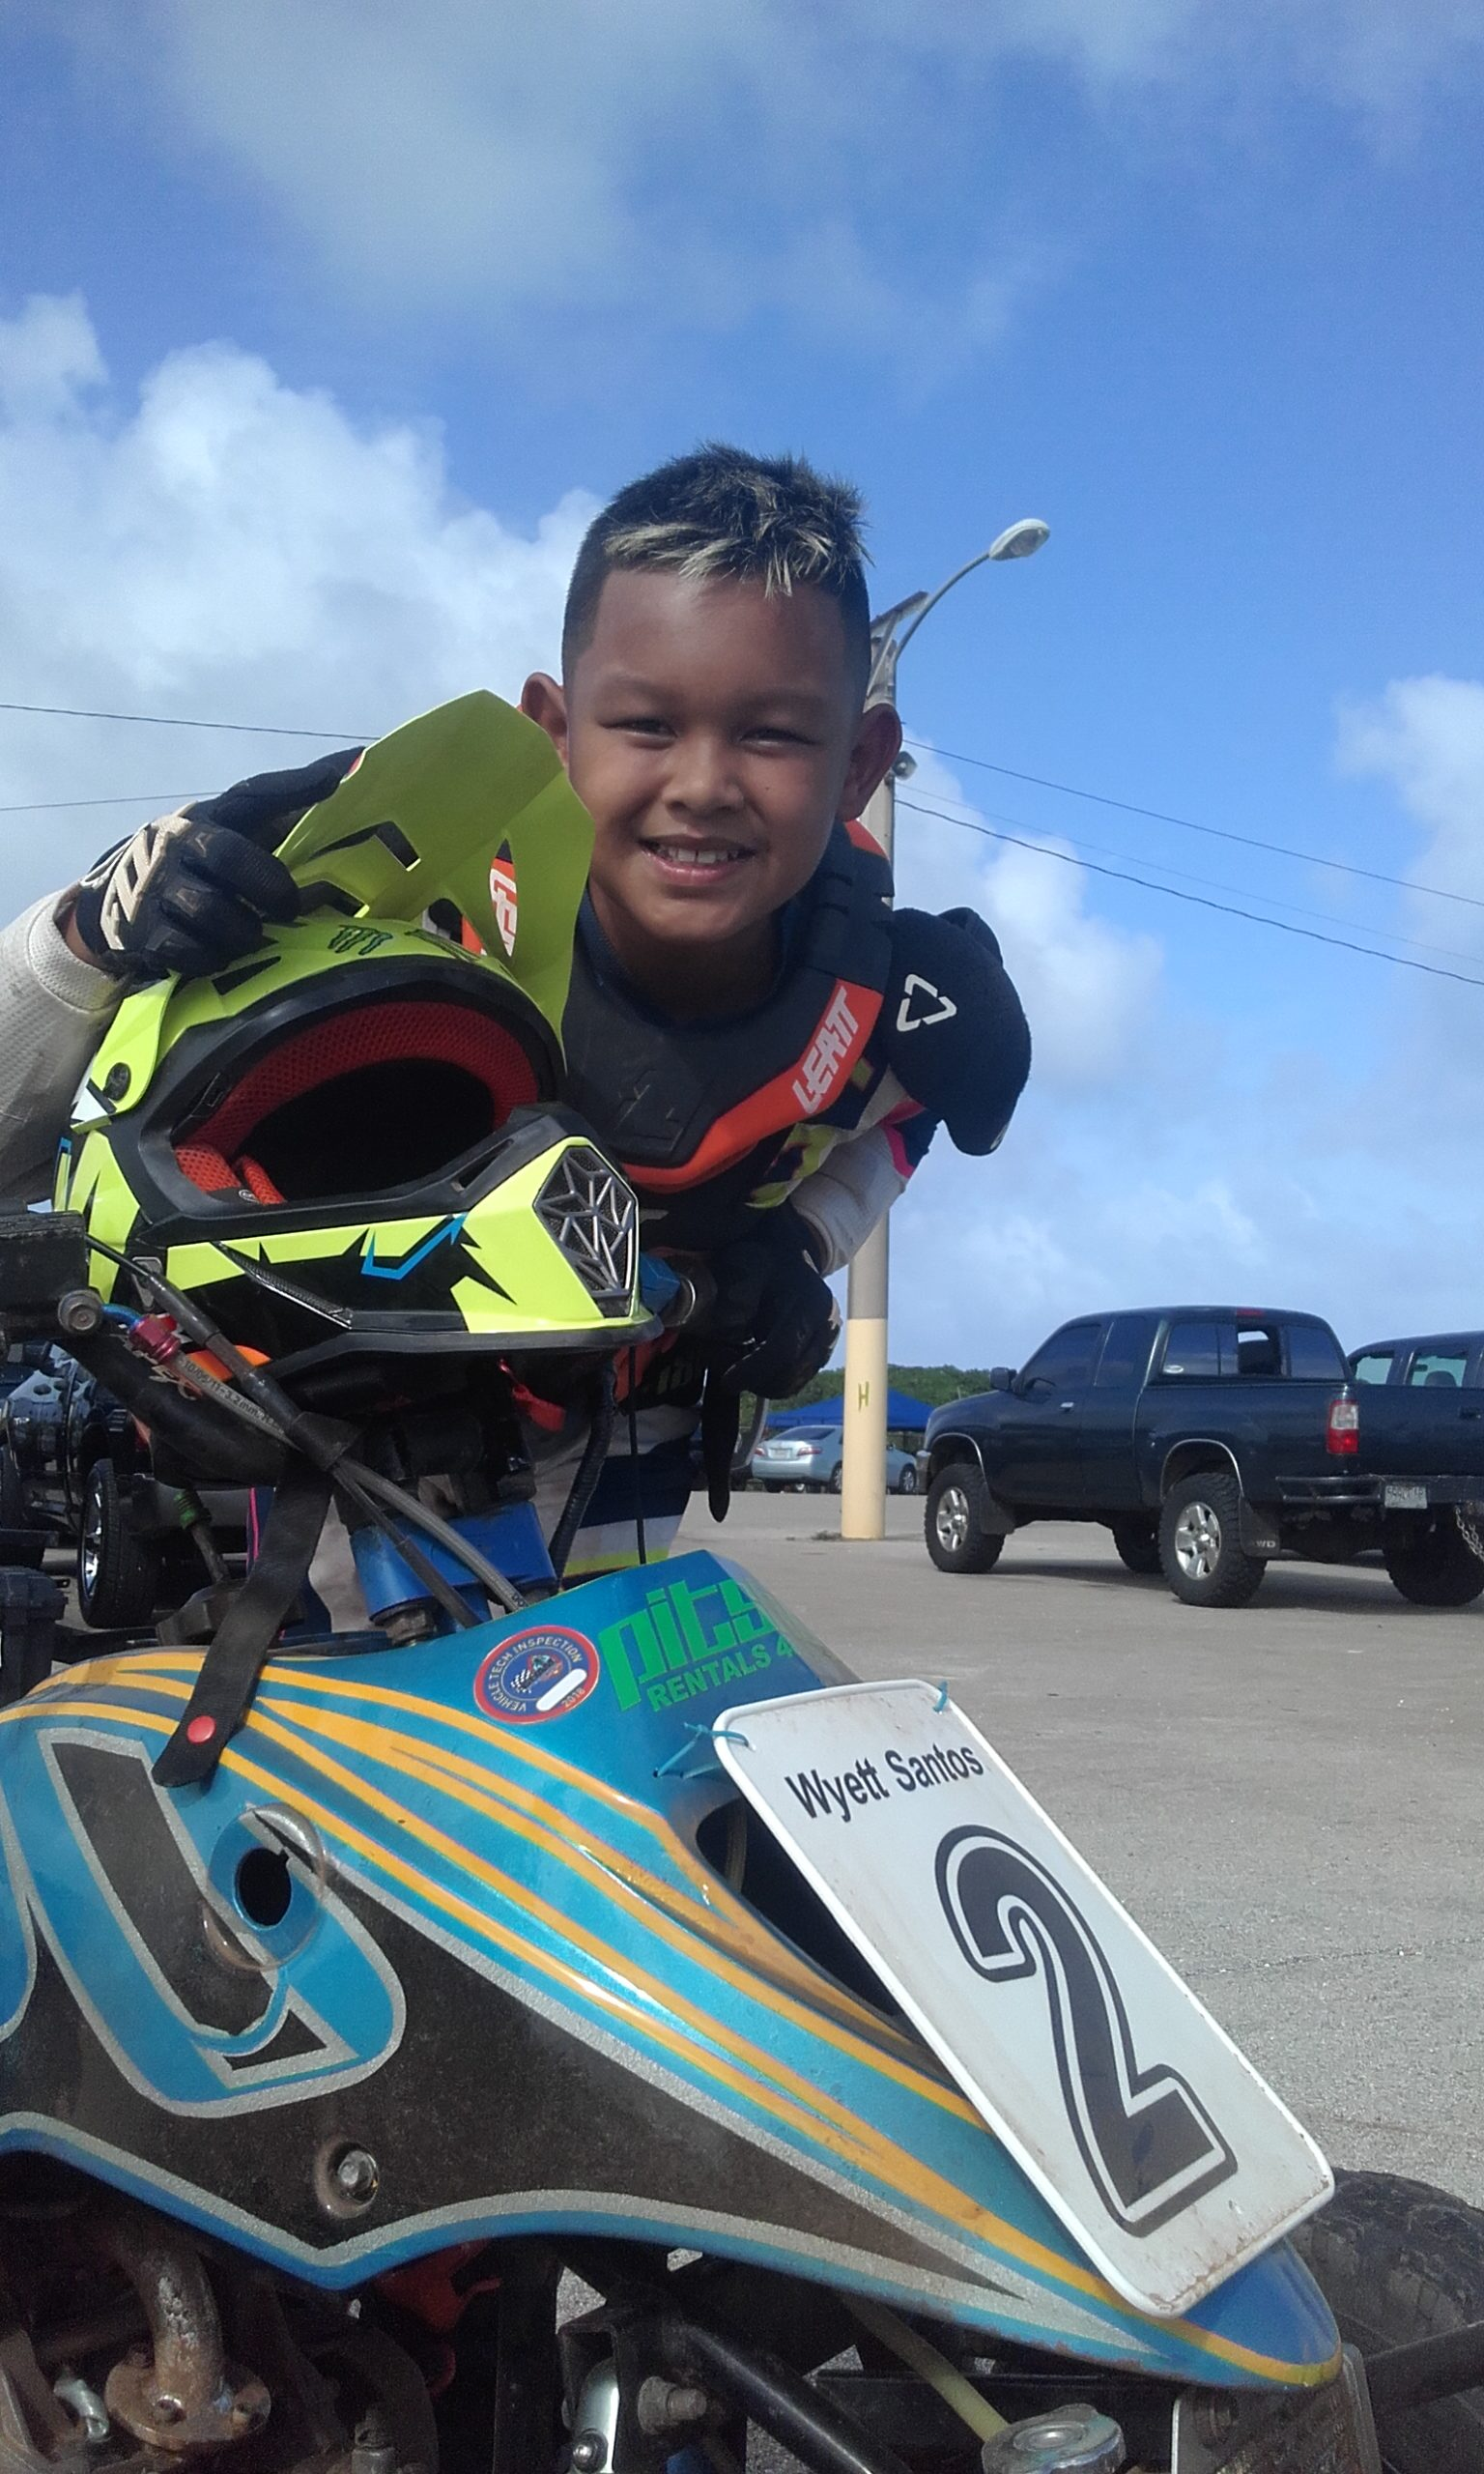 Wyett Santos was back big as he took the wins in two classes the 65cc minibike and the Mini Atv..